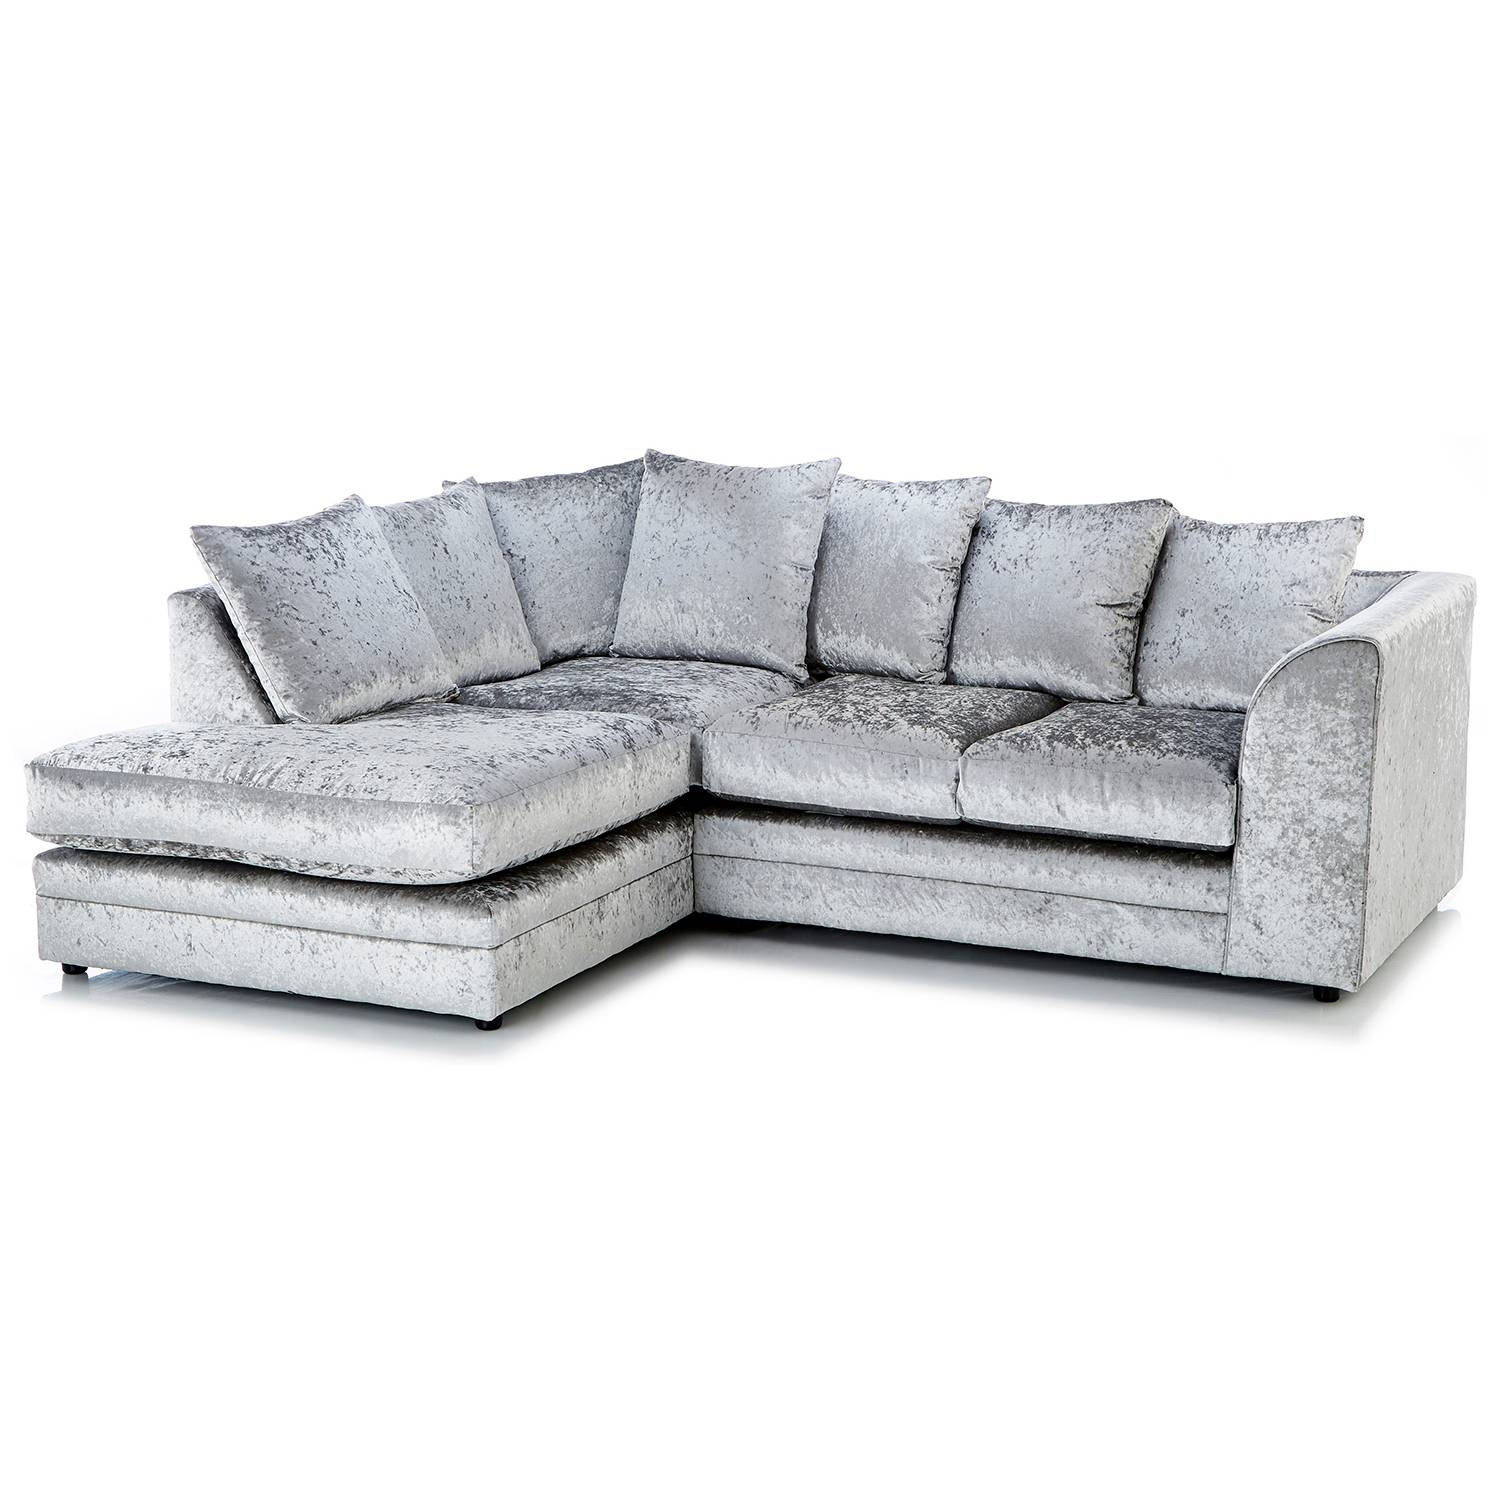 Crushed Velvet Furniture | Sofas, Beds, Chairs, Cushions regarding Corner Sofa Chairs (Image 12 of 30)